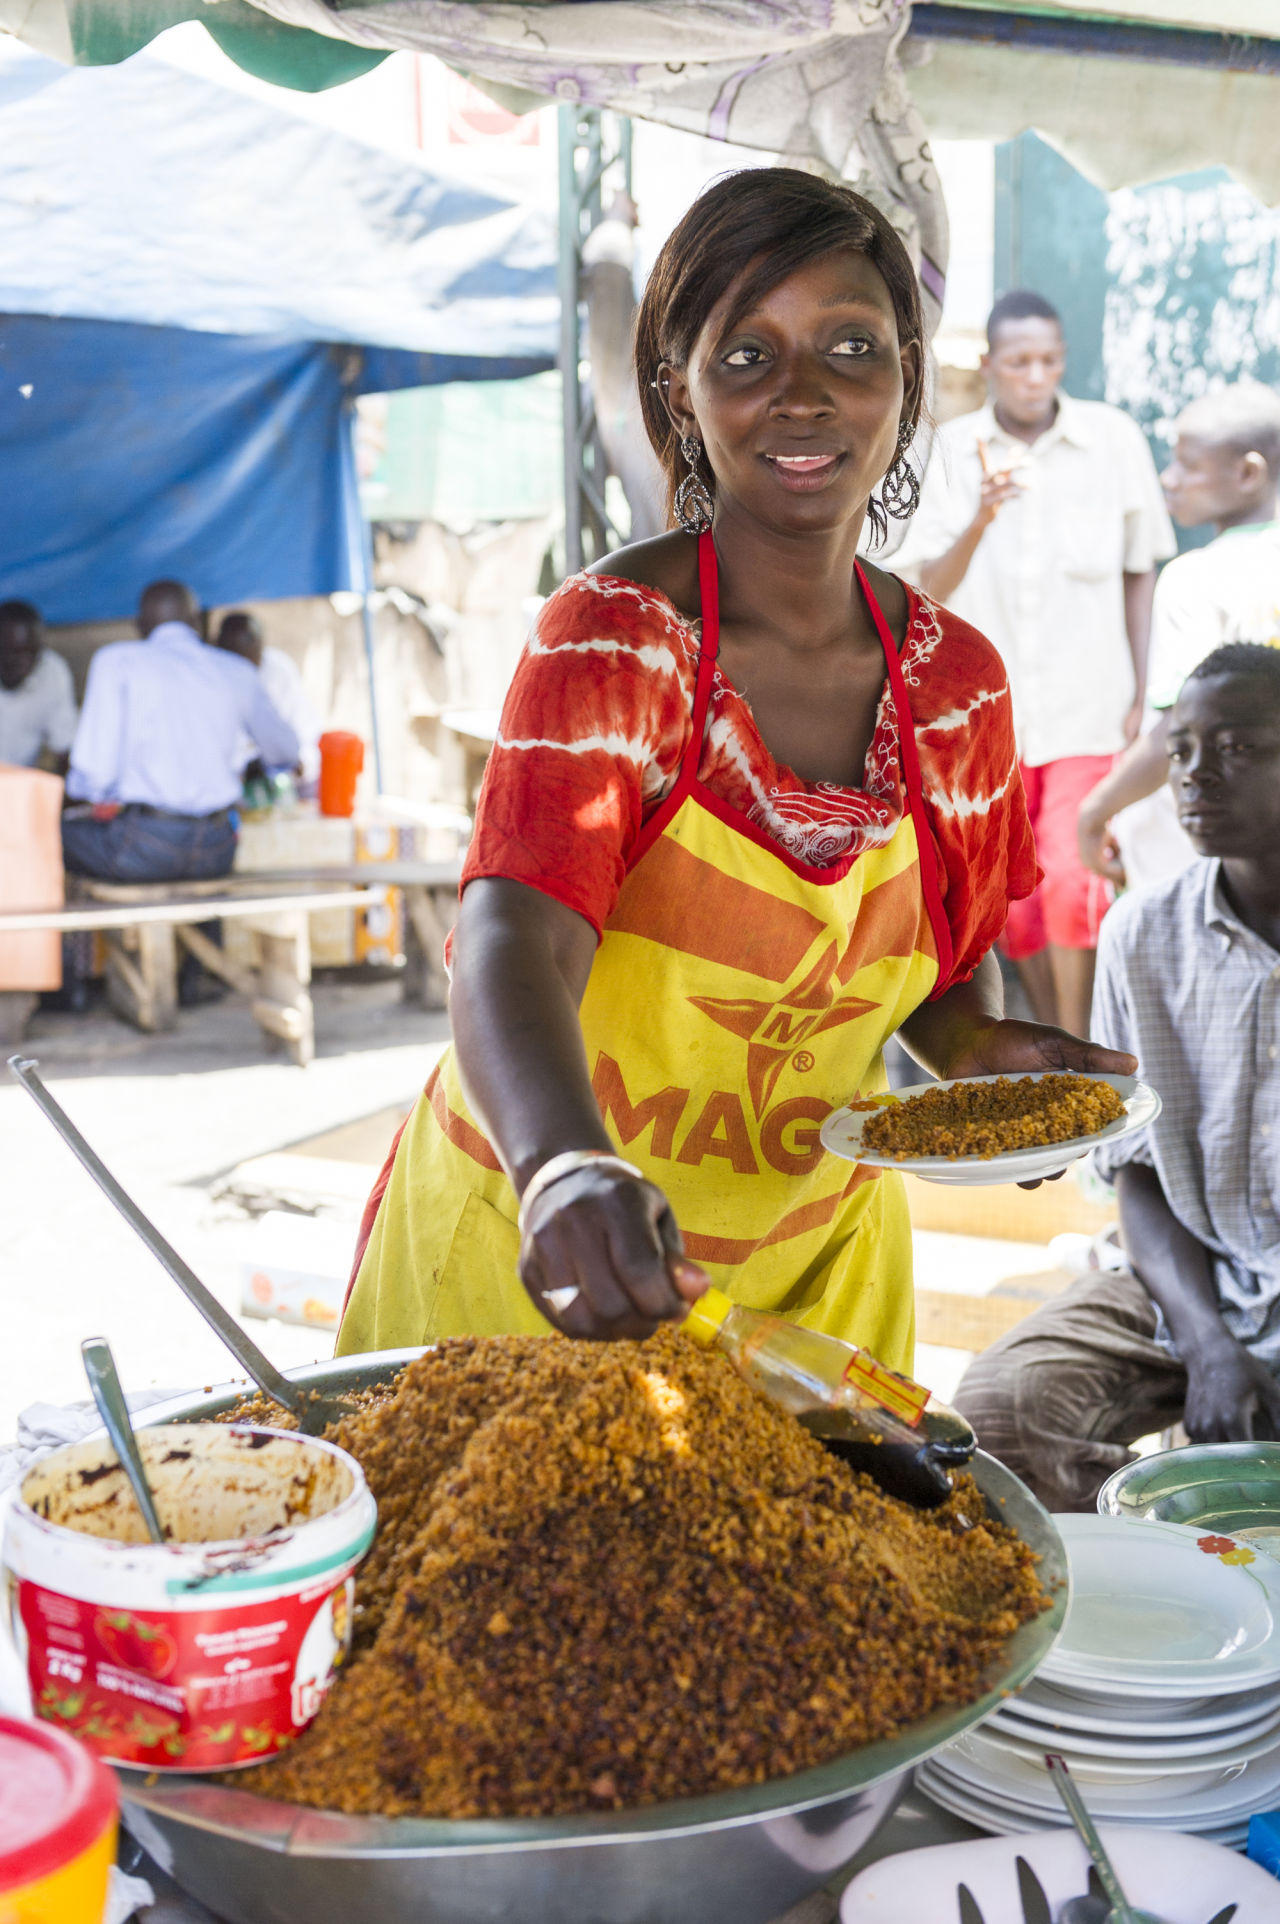 the traditional food in western countries Transnational food corporations (tfcs) (franchises and manufacturers) such as kfc, mcdonalds, kraft and nestlé are all drivers of the fast-food market, processed foods and western lifestyle that have become so widespread in developing countries (hawkes 2005) along with an increased consumption of modern processed foods from developed.